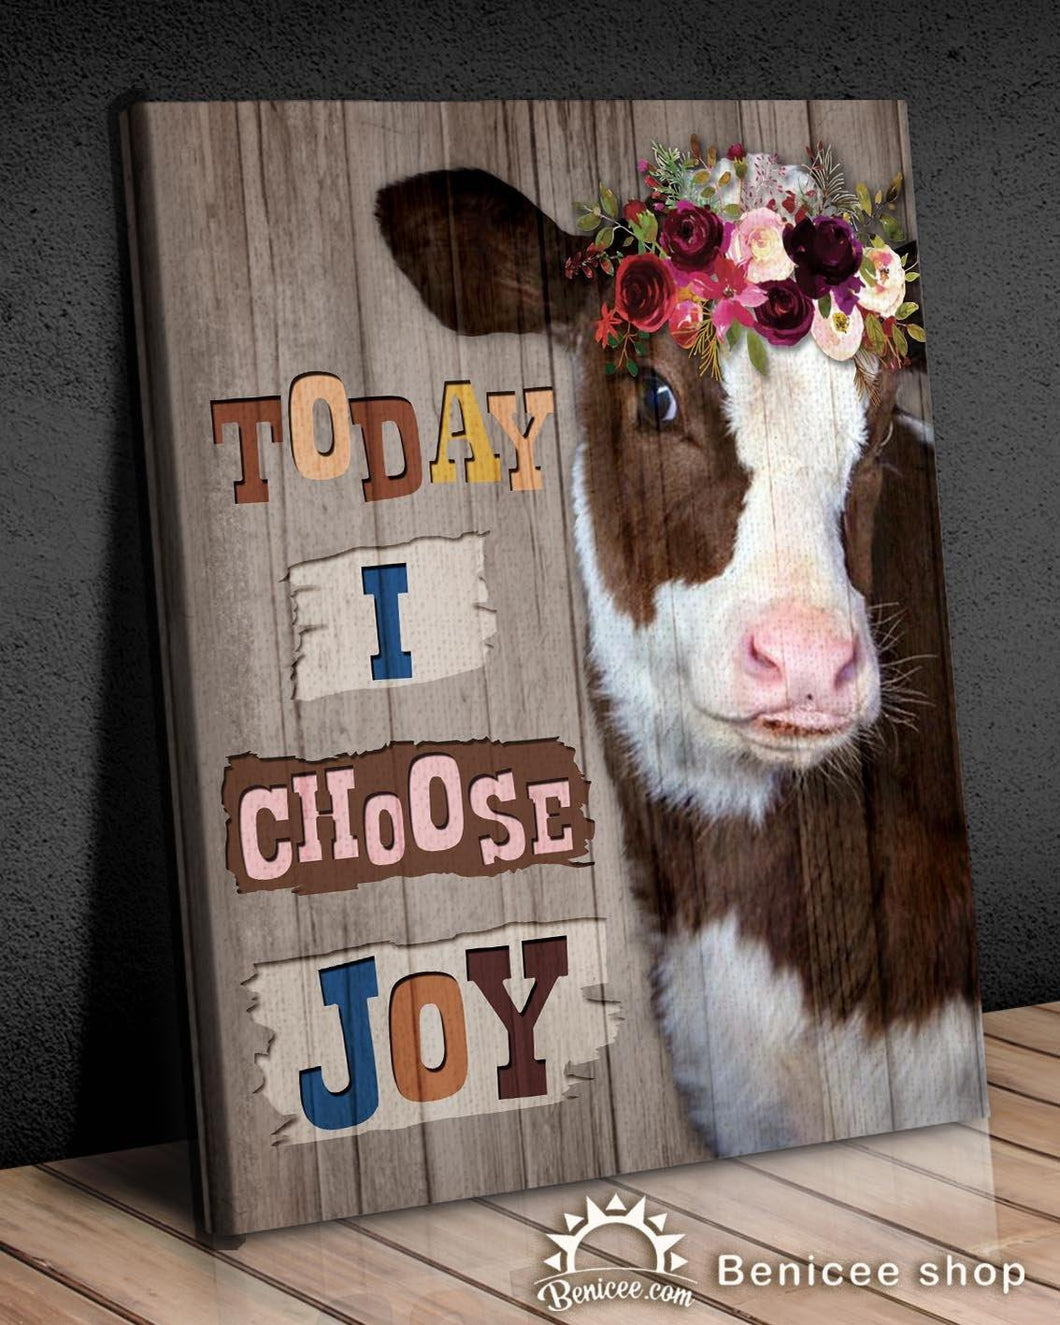 BENICEE Holstein Cow With Flower Wall Art Canvas, Today I Choose Joy Canvas-Canvas Print-Benicee